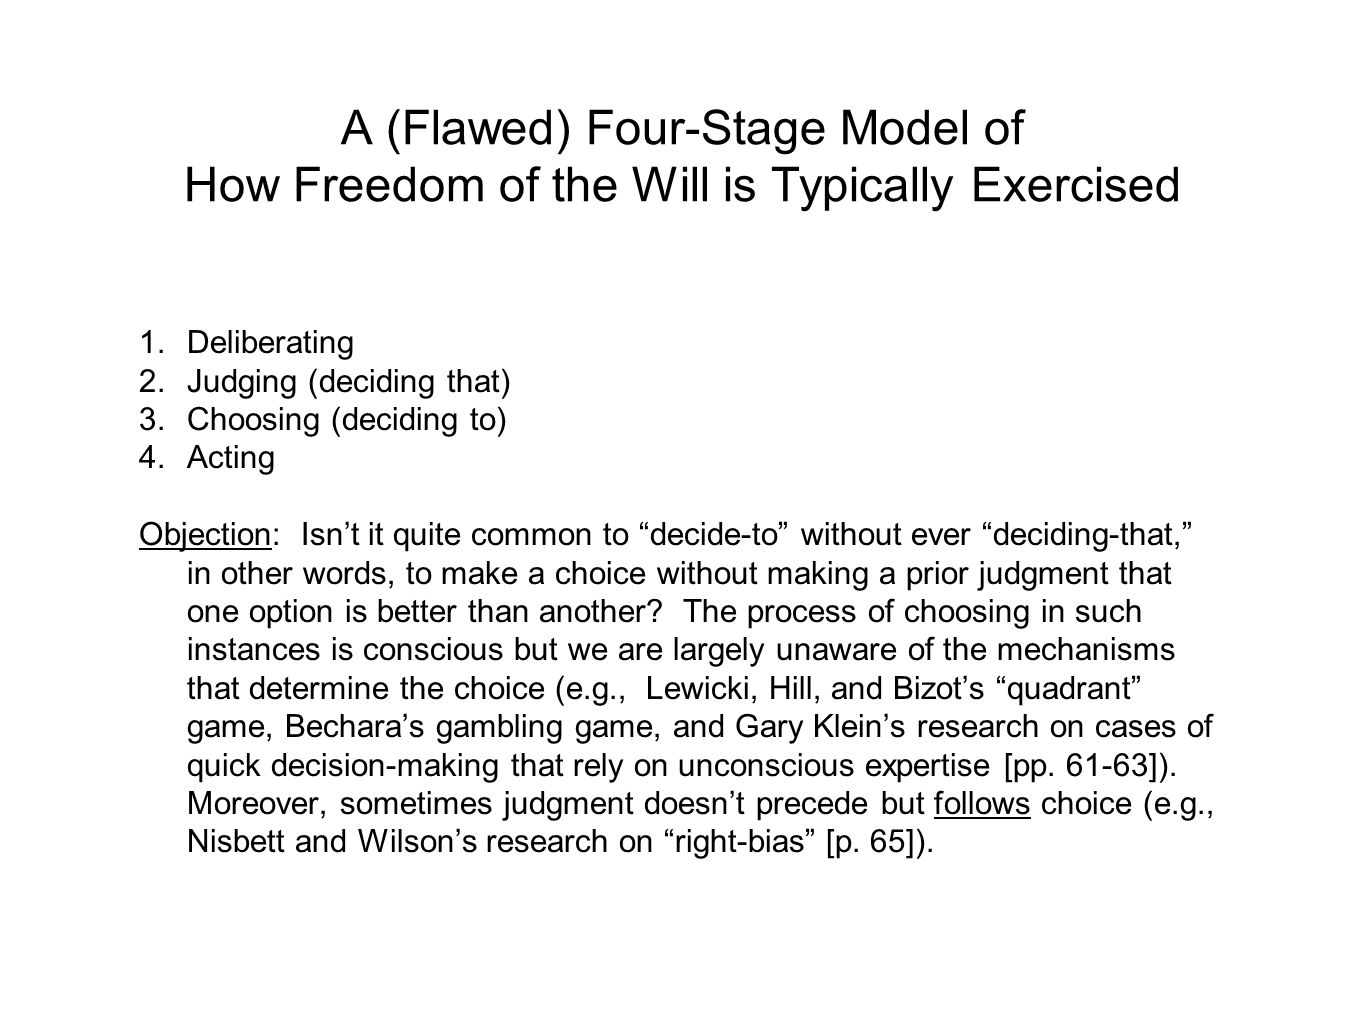 A (Flawed) Four-Stage Model of How Freedom of the Will is Typically Exercised 1.Deliberating 2.Judging (deciding that) 3.Choosing (deciding to) 4.Acti